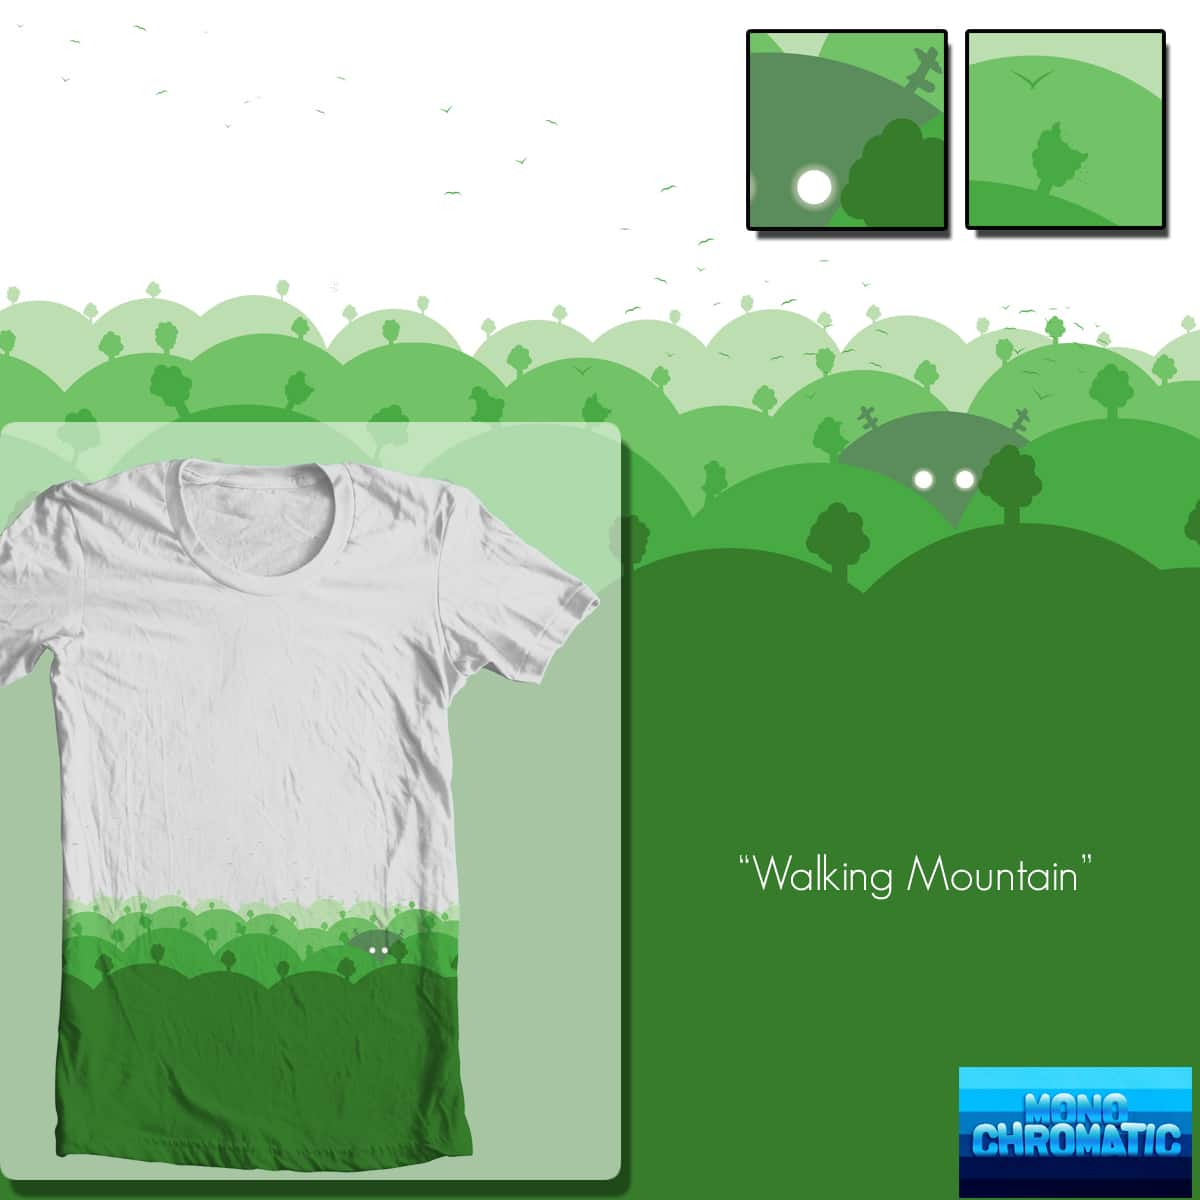 Walking Mountain  by adrianinked on Threadless